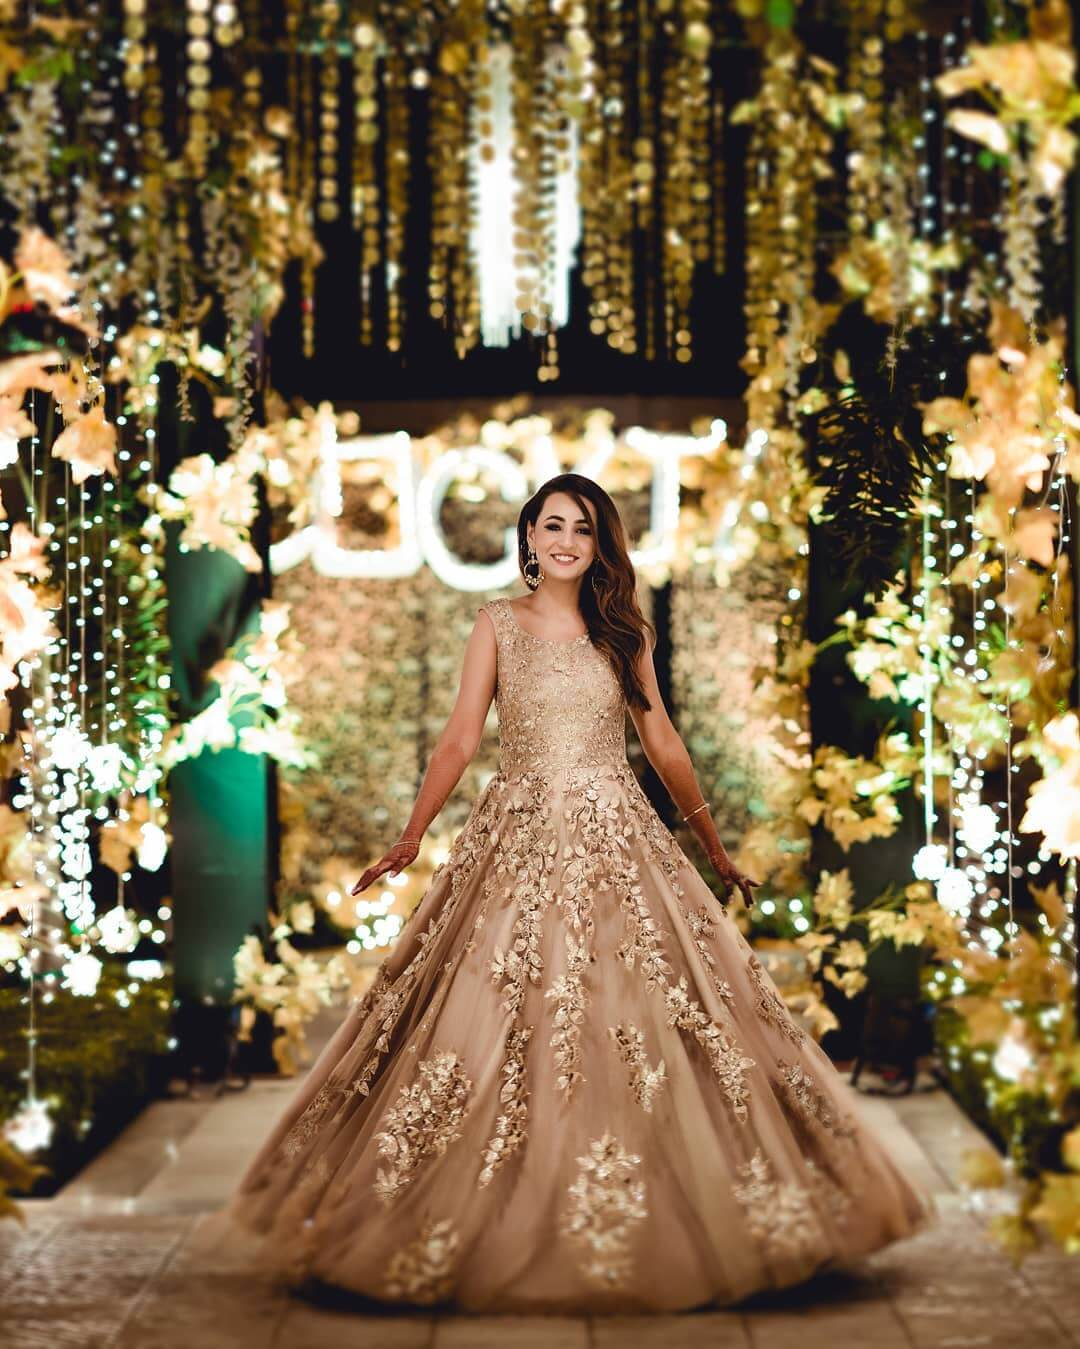 The SimpleBeige Color Wedding Gown for wedding functions